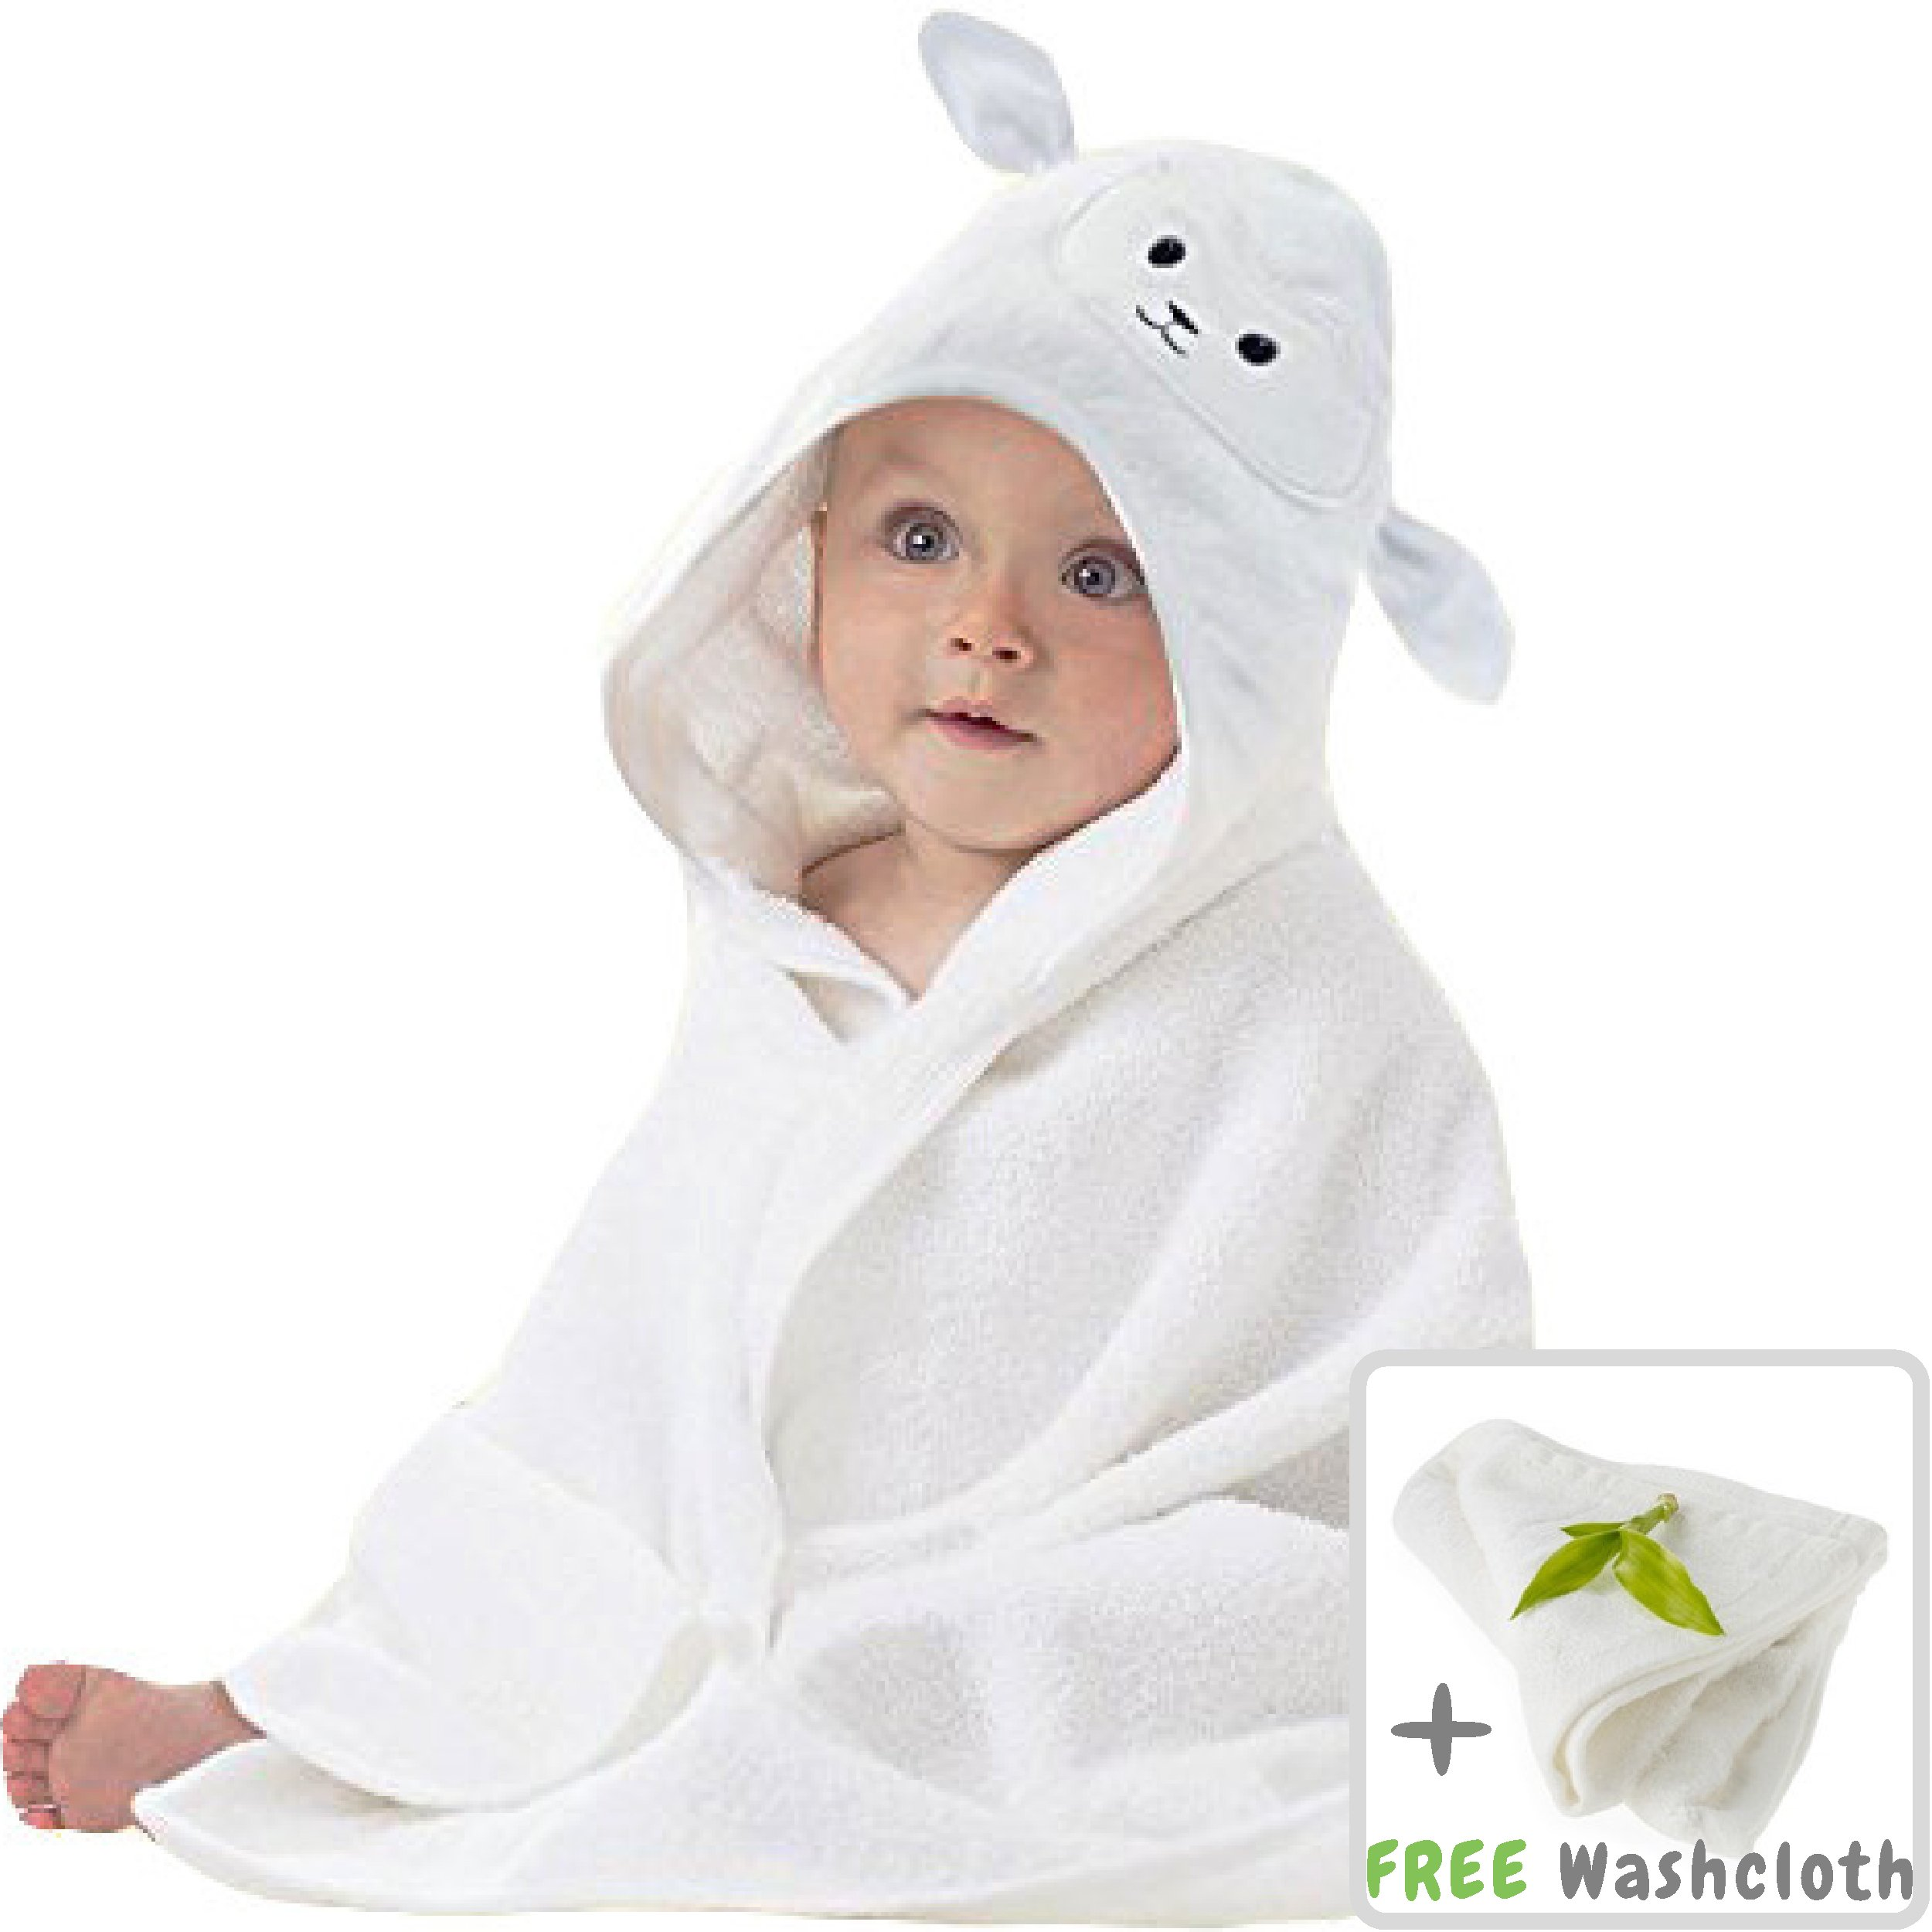 ad7aa0ef8bf0 Get Quotations · Organic Bamboo Baby Hooded Towel with Bonus Washcloth |  Ultra Soft and Super Absorbent Toddler Hooded